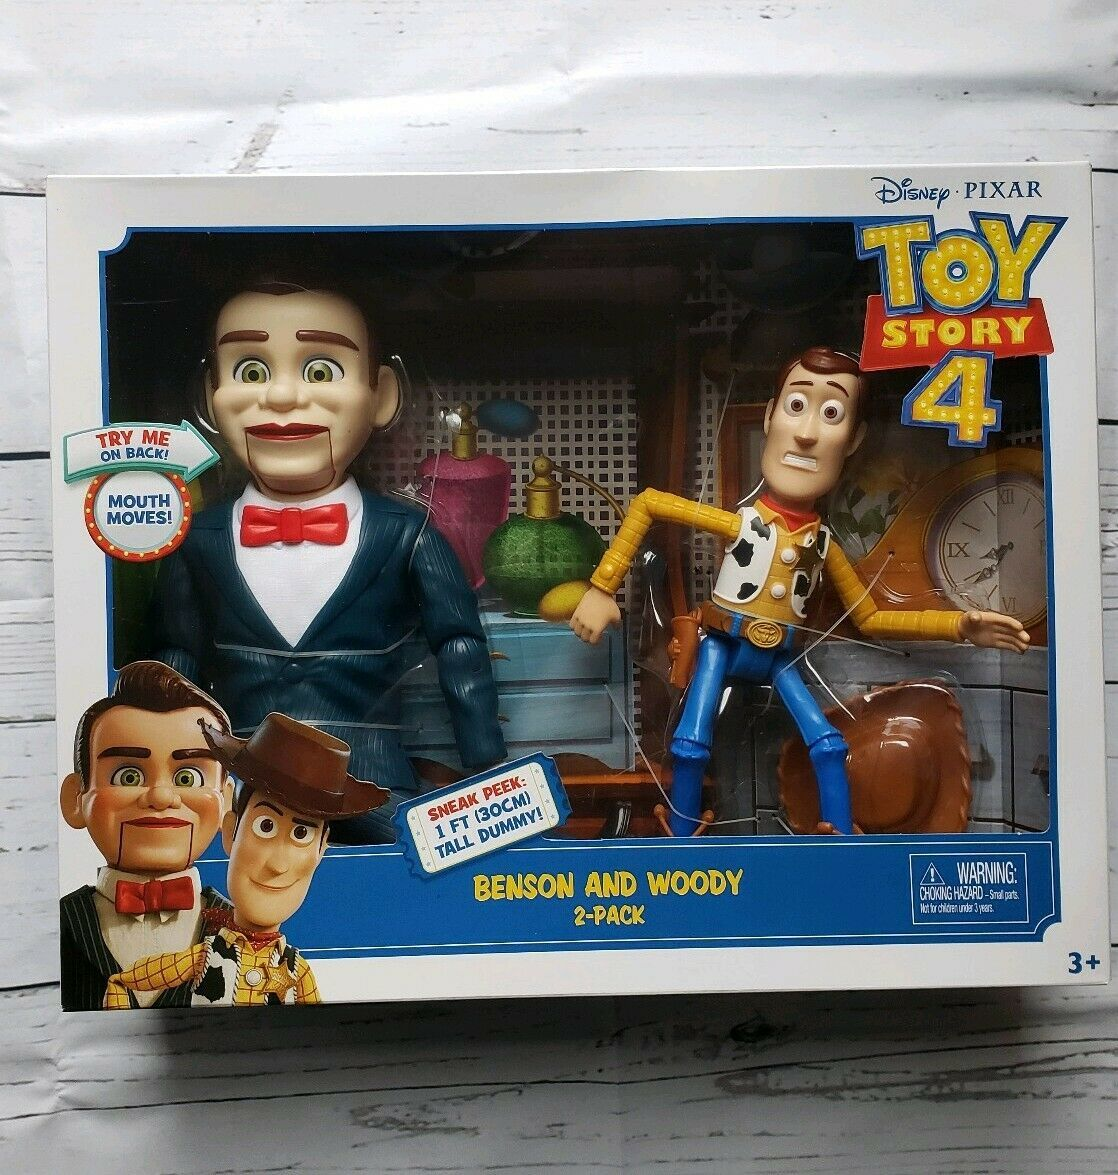 Disney Pixar Toy Story 4 Benson and Woody 2 Pack - Rare Figures BRAND NEW